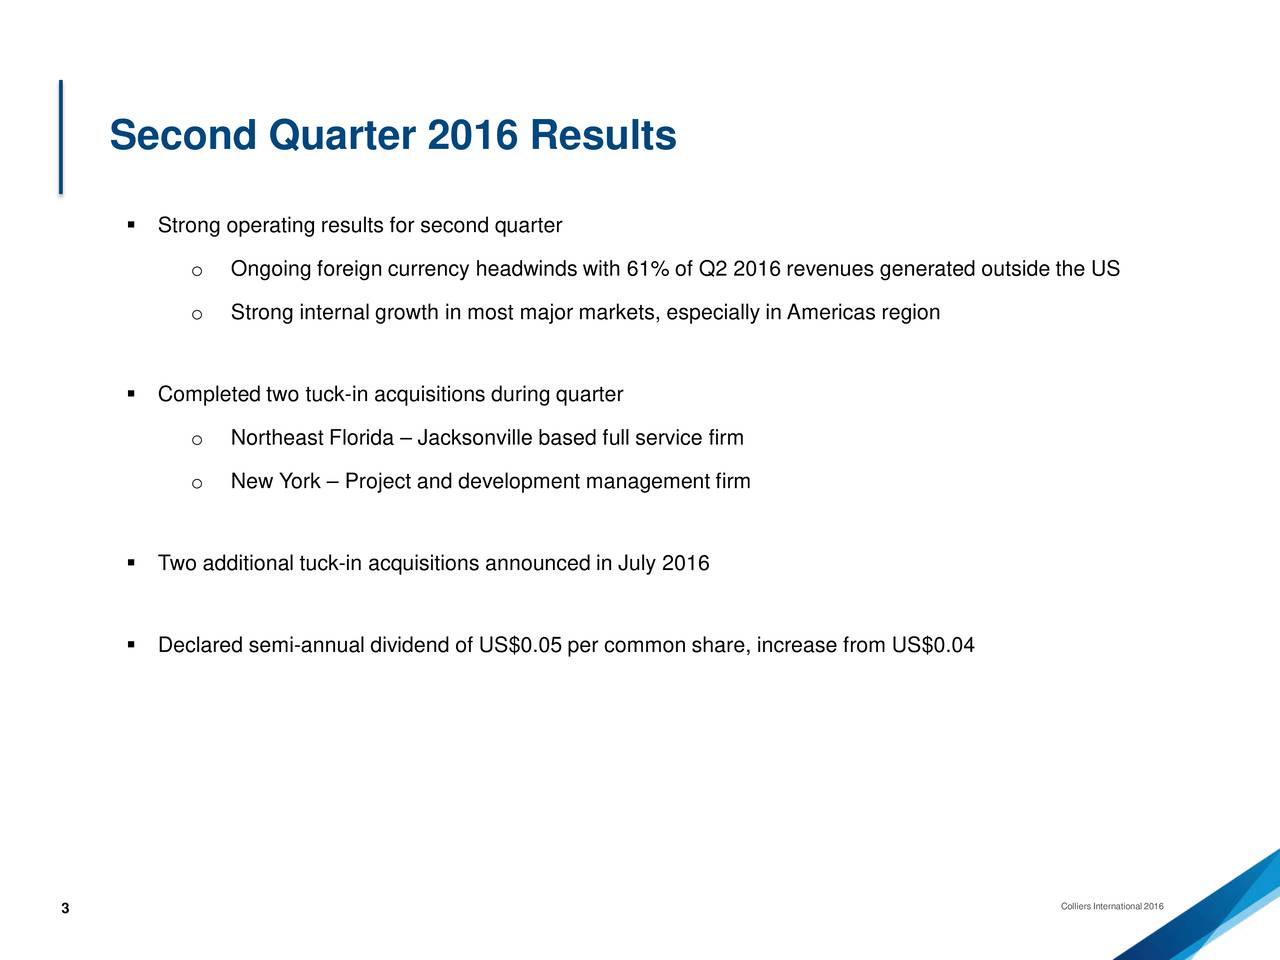 Strong operating results for second quarter o Ongoing foreign currency headwinds with 61% of Q2 2016 revenues generated outside the US o Strong internal growth in most major markets, especially in Americas region Completed two tuck-in acquisitions during quarter o Northeast Florida  Jacksonville based full service firm o New York  Project and development management firm Two additional tuck-in acquisitions announced in July 2016 Declared semi-annual dividend of US$0.05 per common share, increase from US$0.04 3 Colliers International 2016